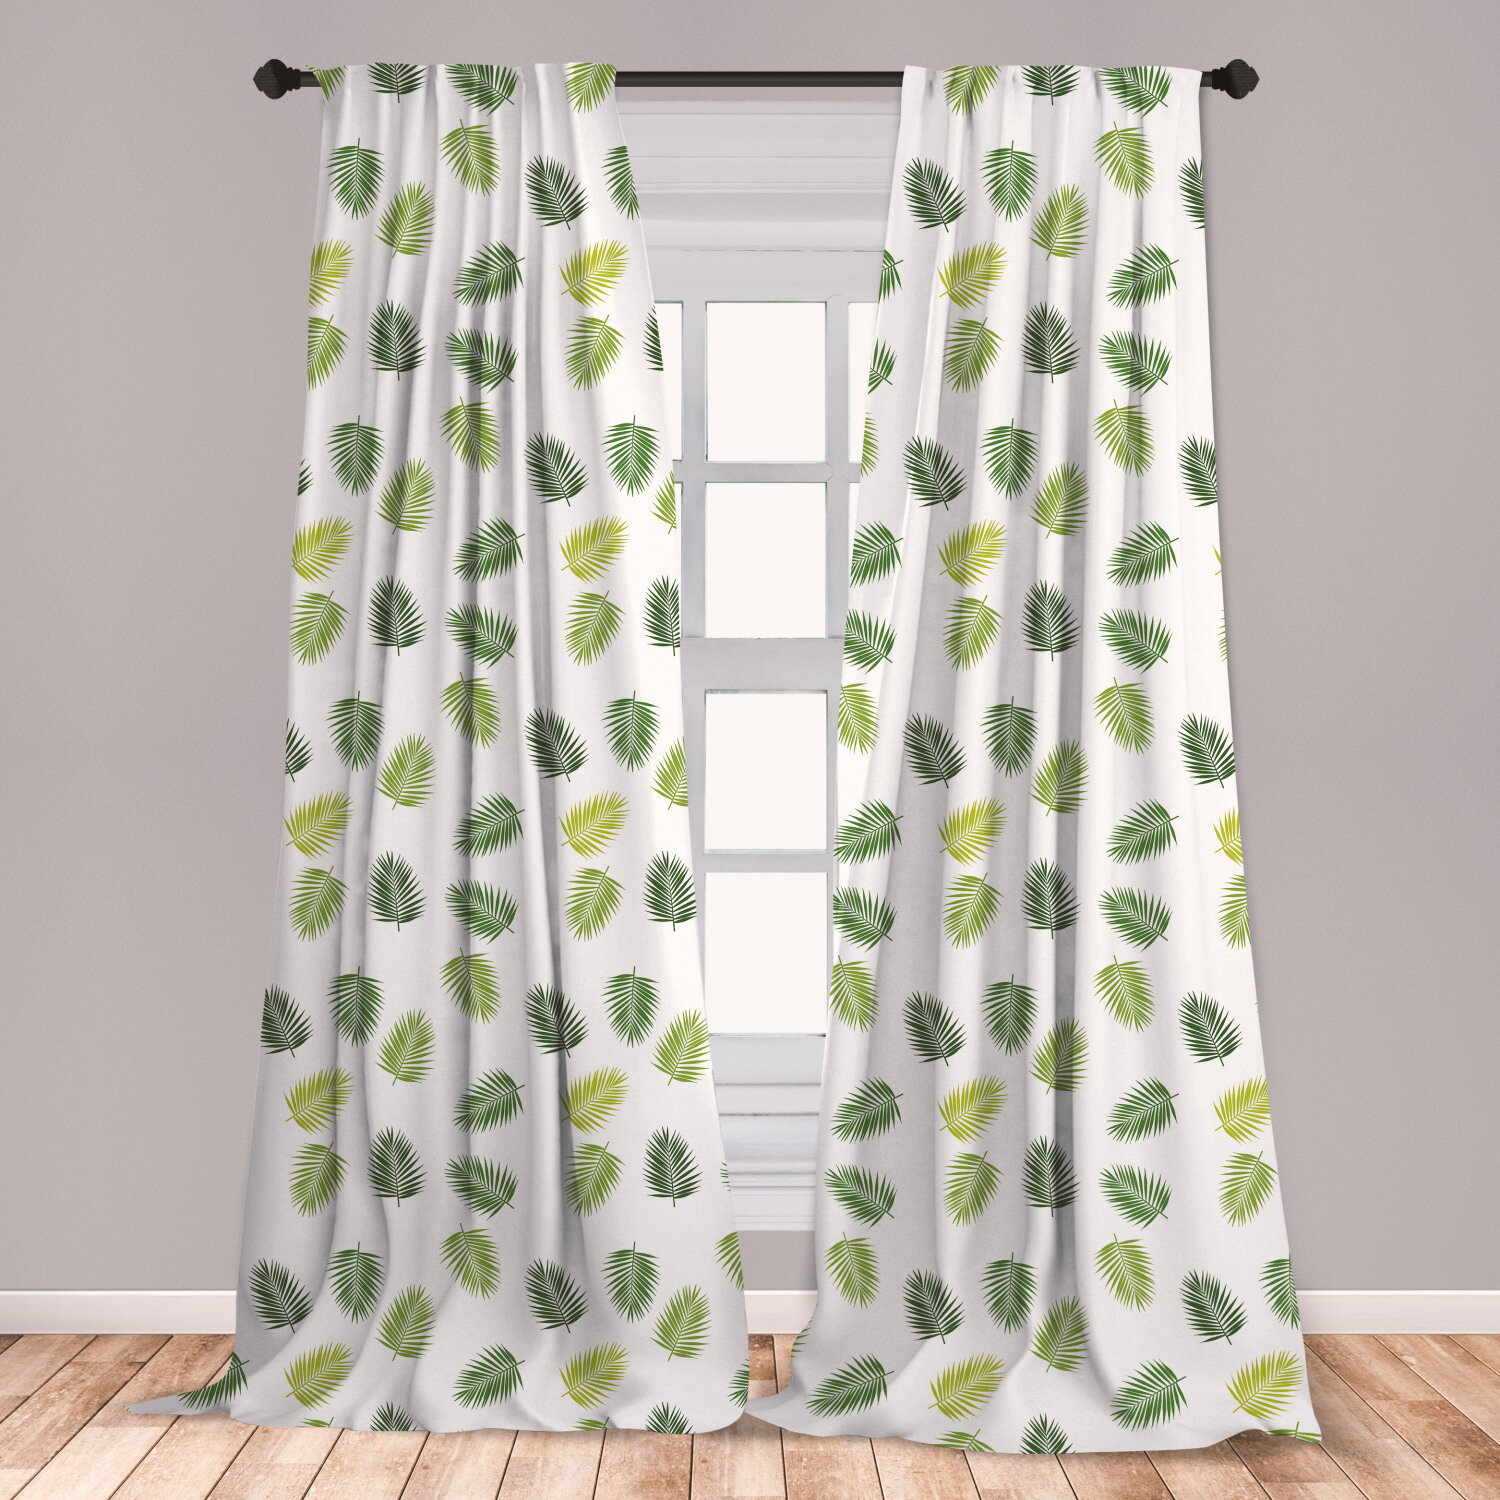 East Urban Home Jungle Leaves Floral Room Darkening Rod Pocket Curtain Panels Wayfair